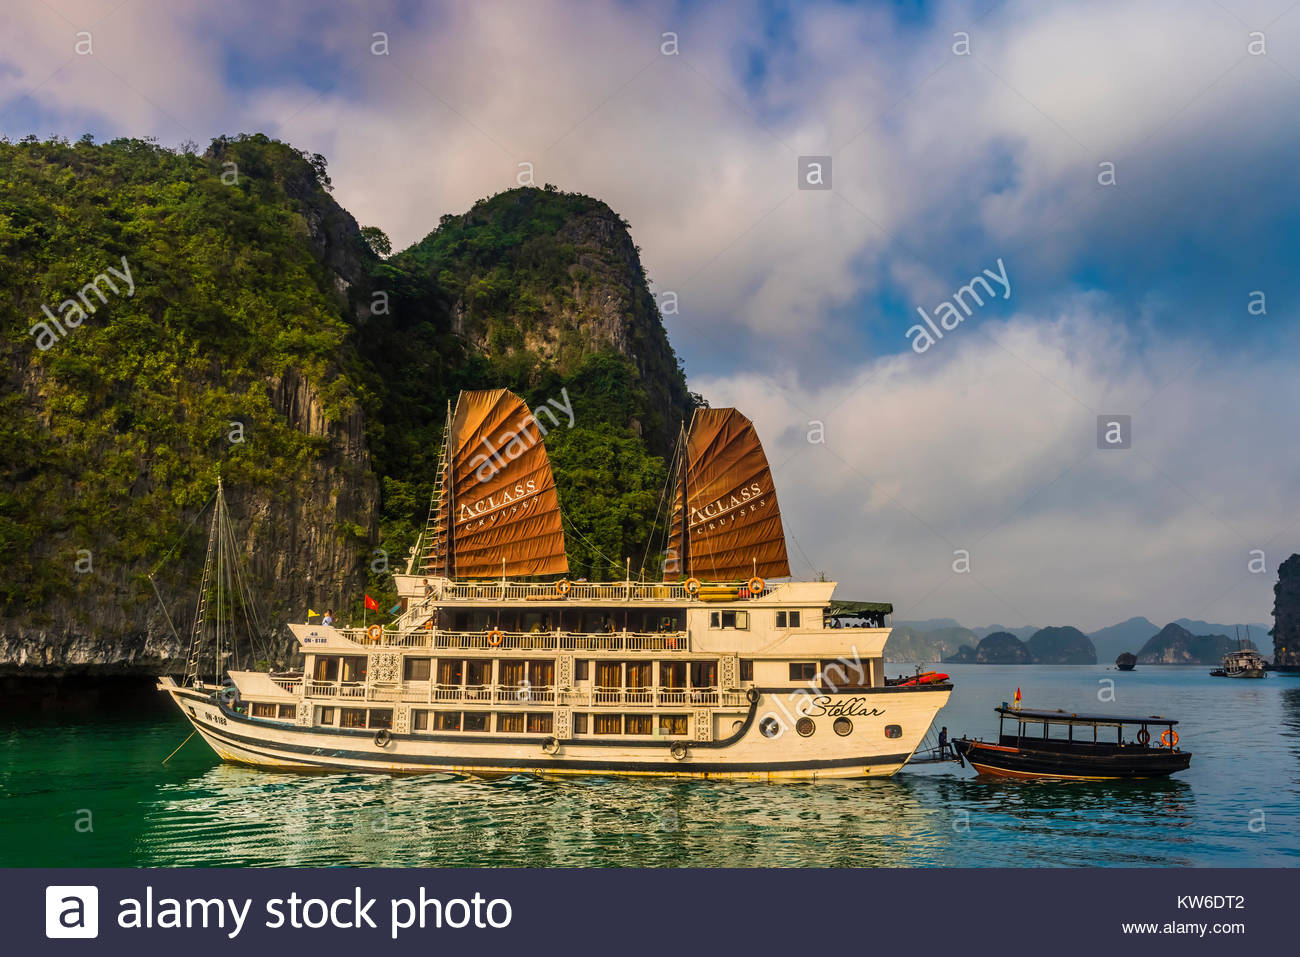 Aclass Cruises Stellar anchored in Halong Bay, North Vietnam. The bay features 3,000  limestone and dolomite karsts - Stock Image